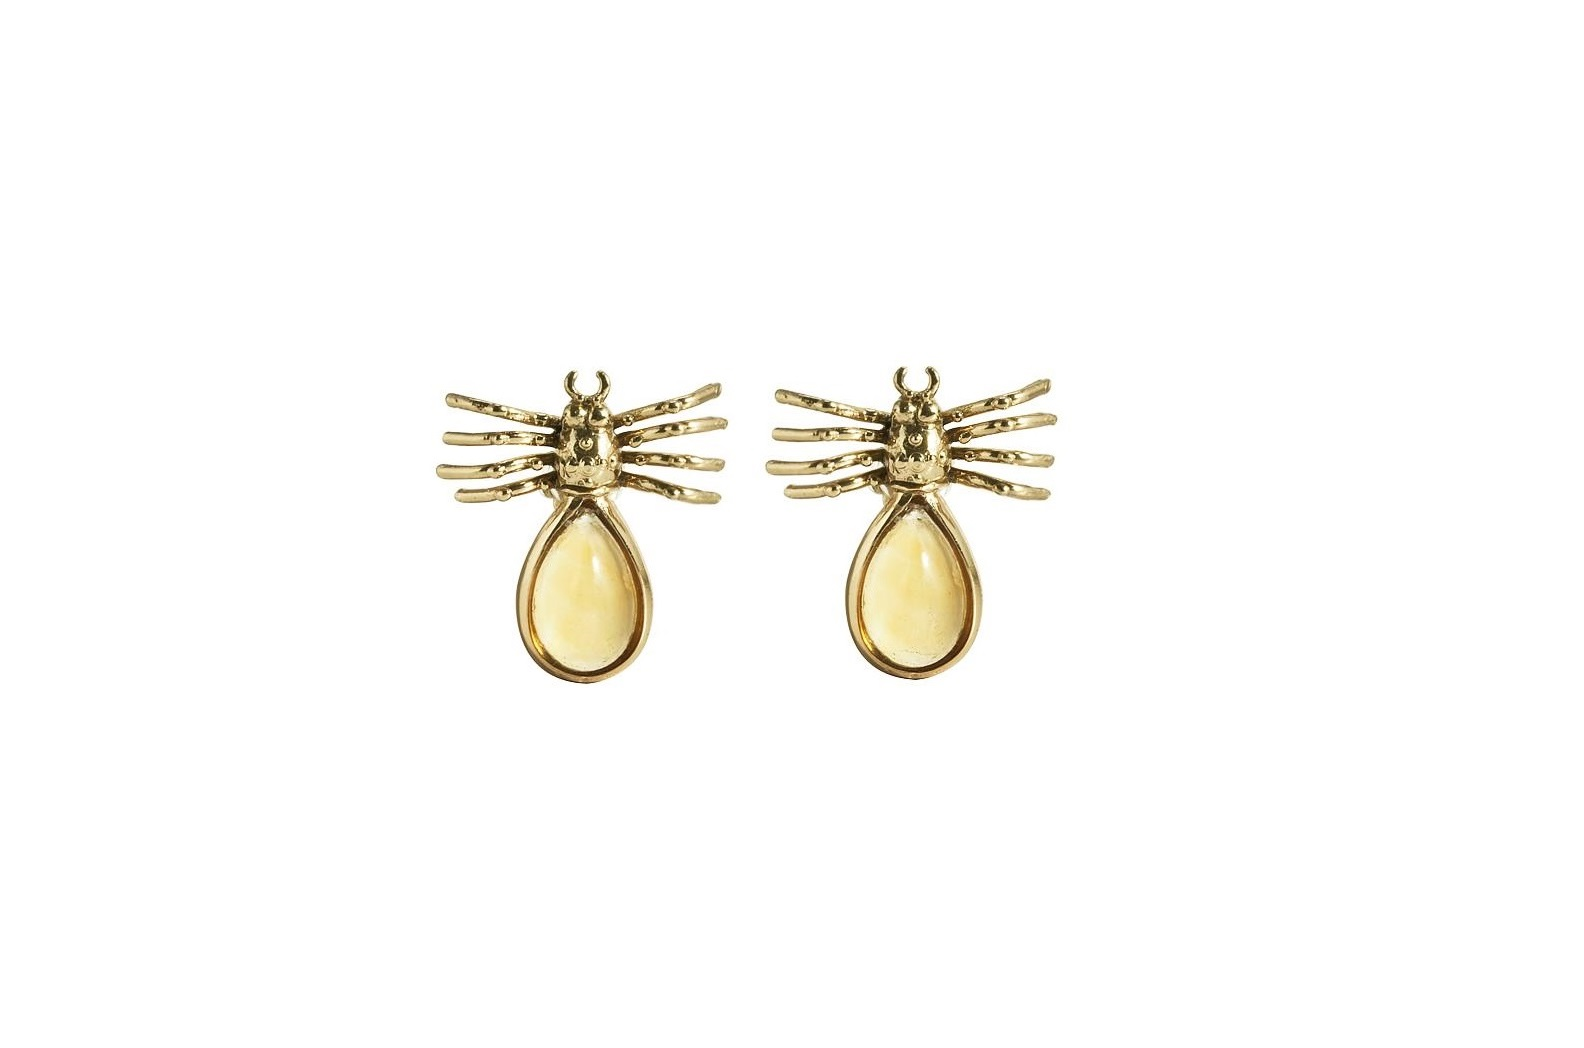 Spider bronze earrings with drop citrine